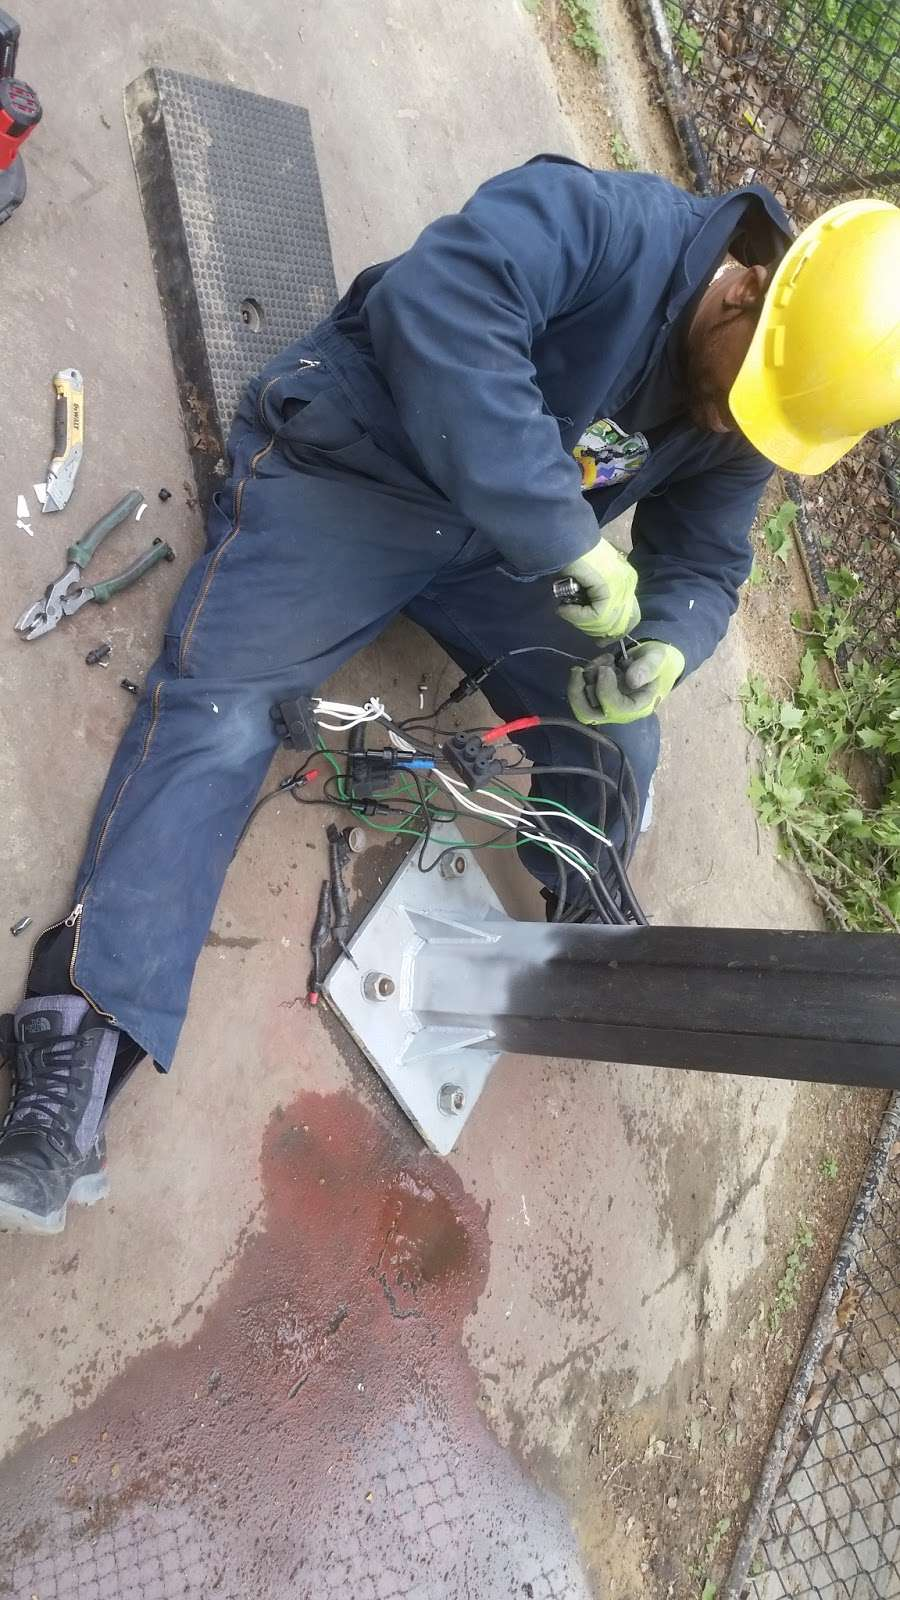 Prospect Electric Service Inc - electrician  | Photo 1 of 3 | Address: 185 Malta St, Brooklyn, NY 11207, USA | Phone: (718) 857-2830